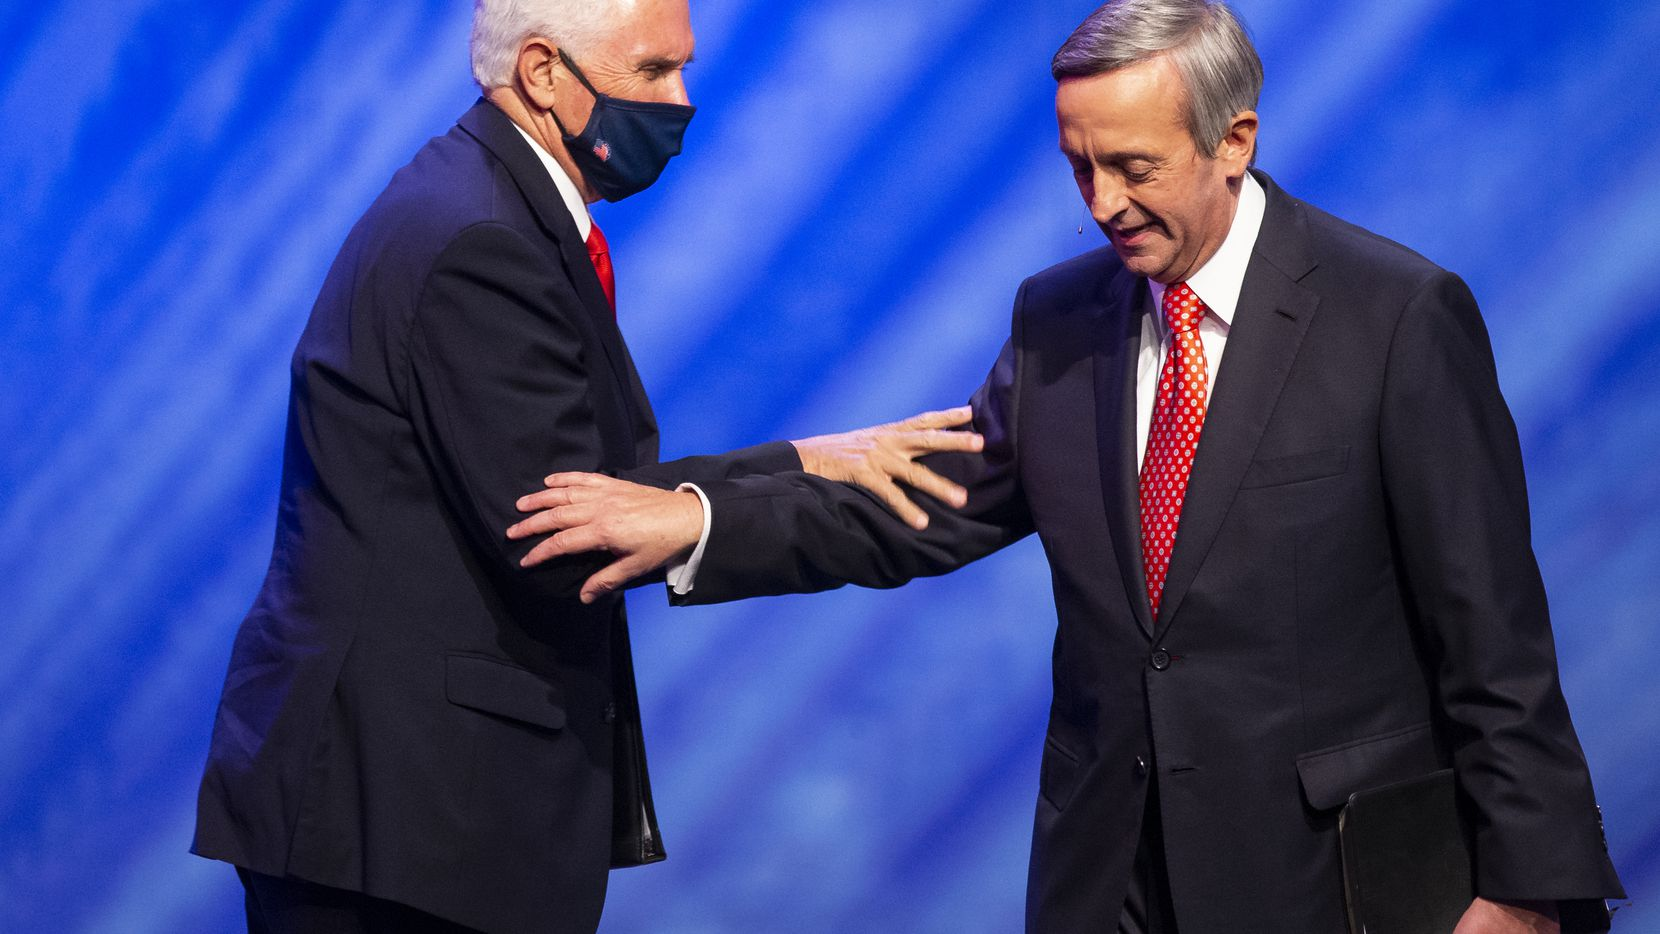 Pastor Robert Jeffress introduces Vice President Mike Pence before speaking at First Baptist Church's Celebrate Freedom Sunday event in downtown Dallas on Sunday, June 28, 2020.